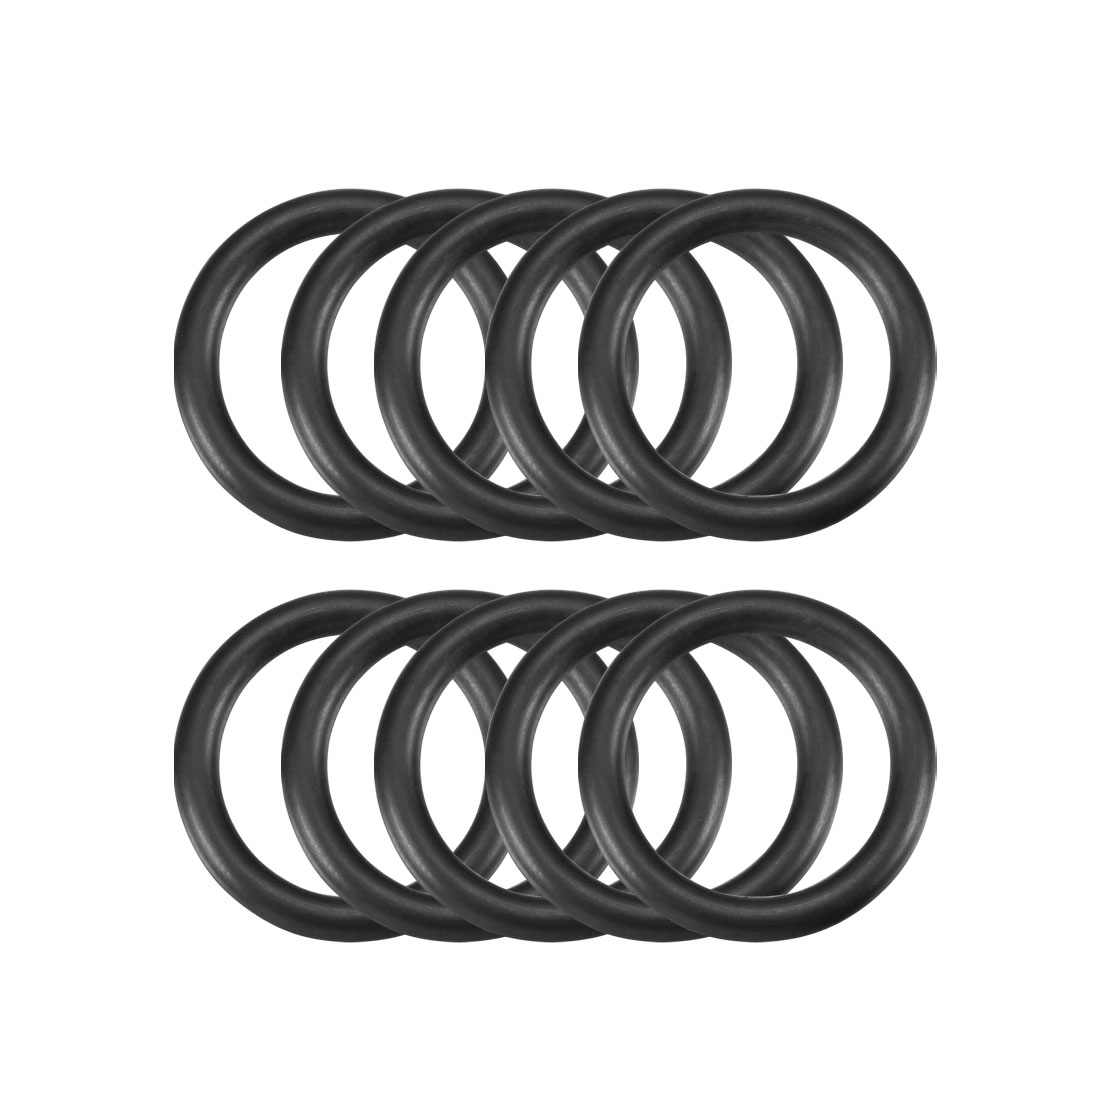 10 Pcs 24mm x 17mm x 3.1mm Mechanical Rubber O Ring Oil Seal Gaskets